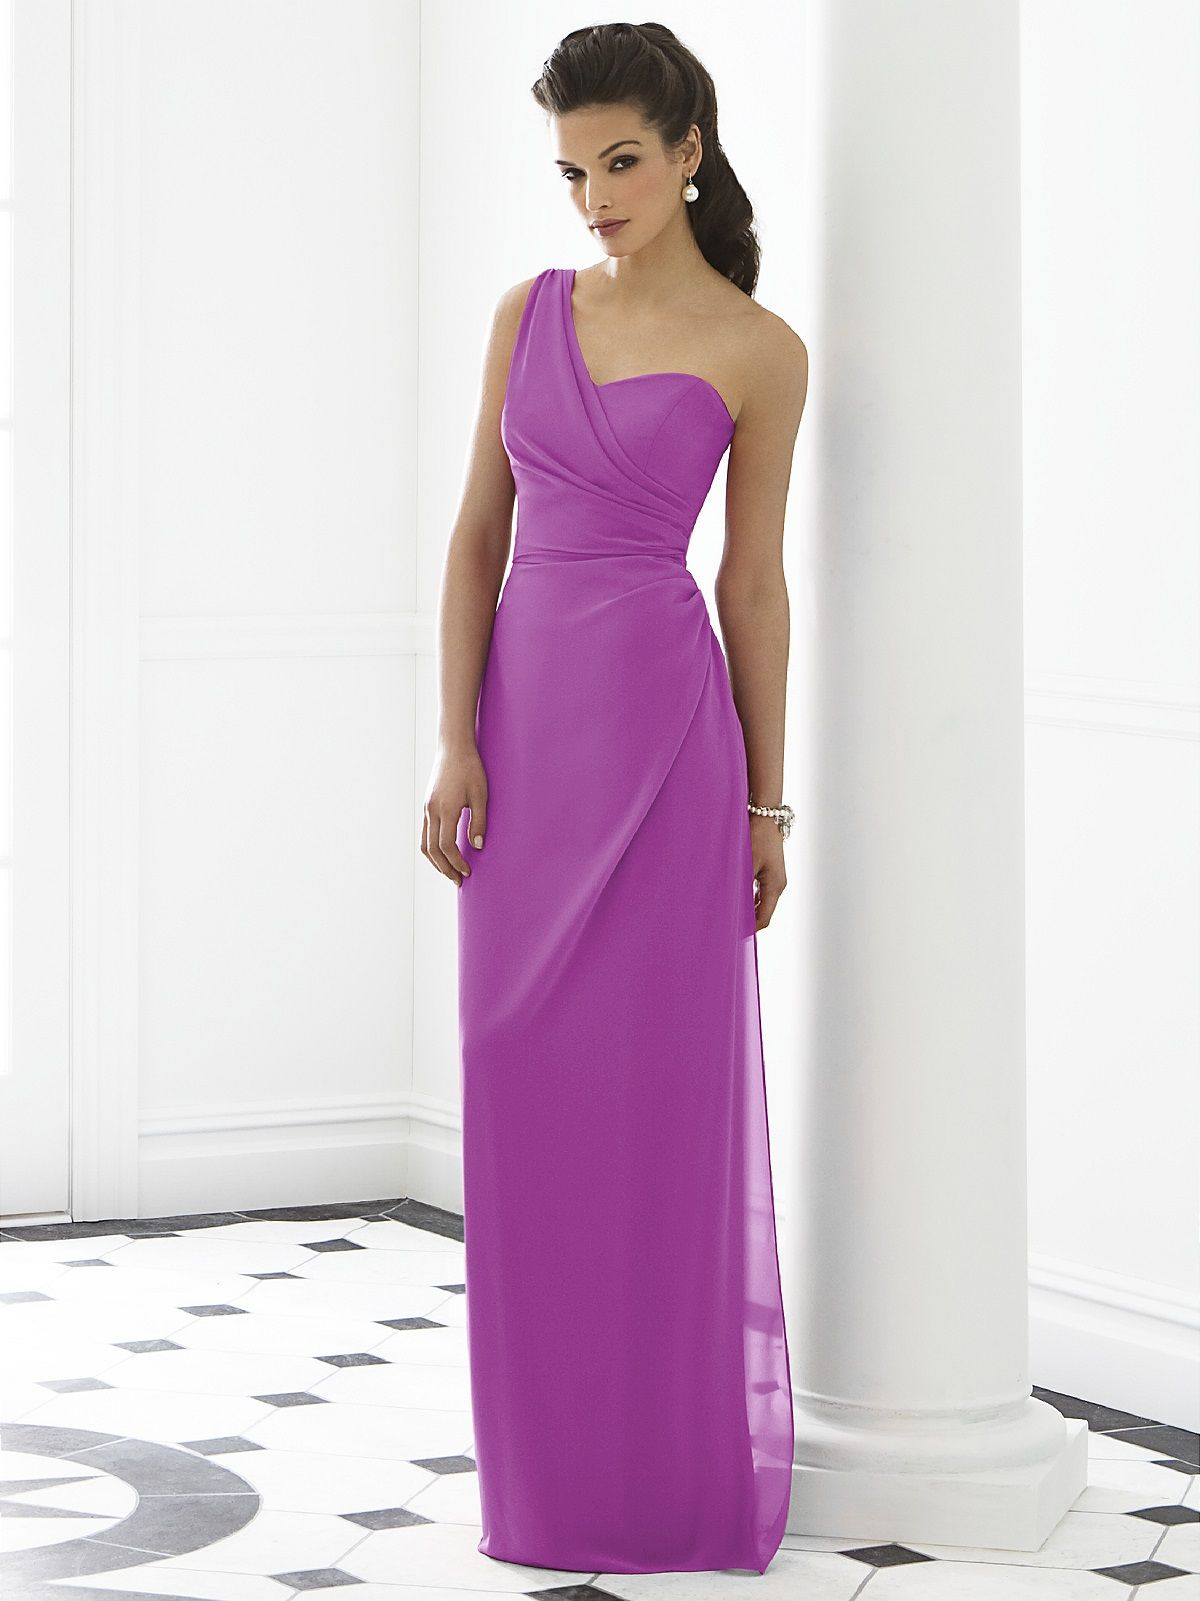 Radiant Orchid bridesmaid dress from After Six | Weddings ...